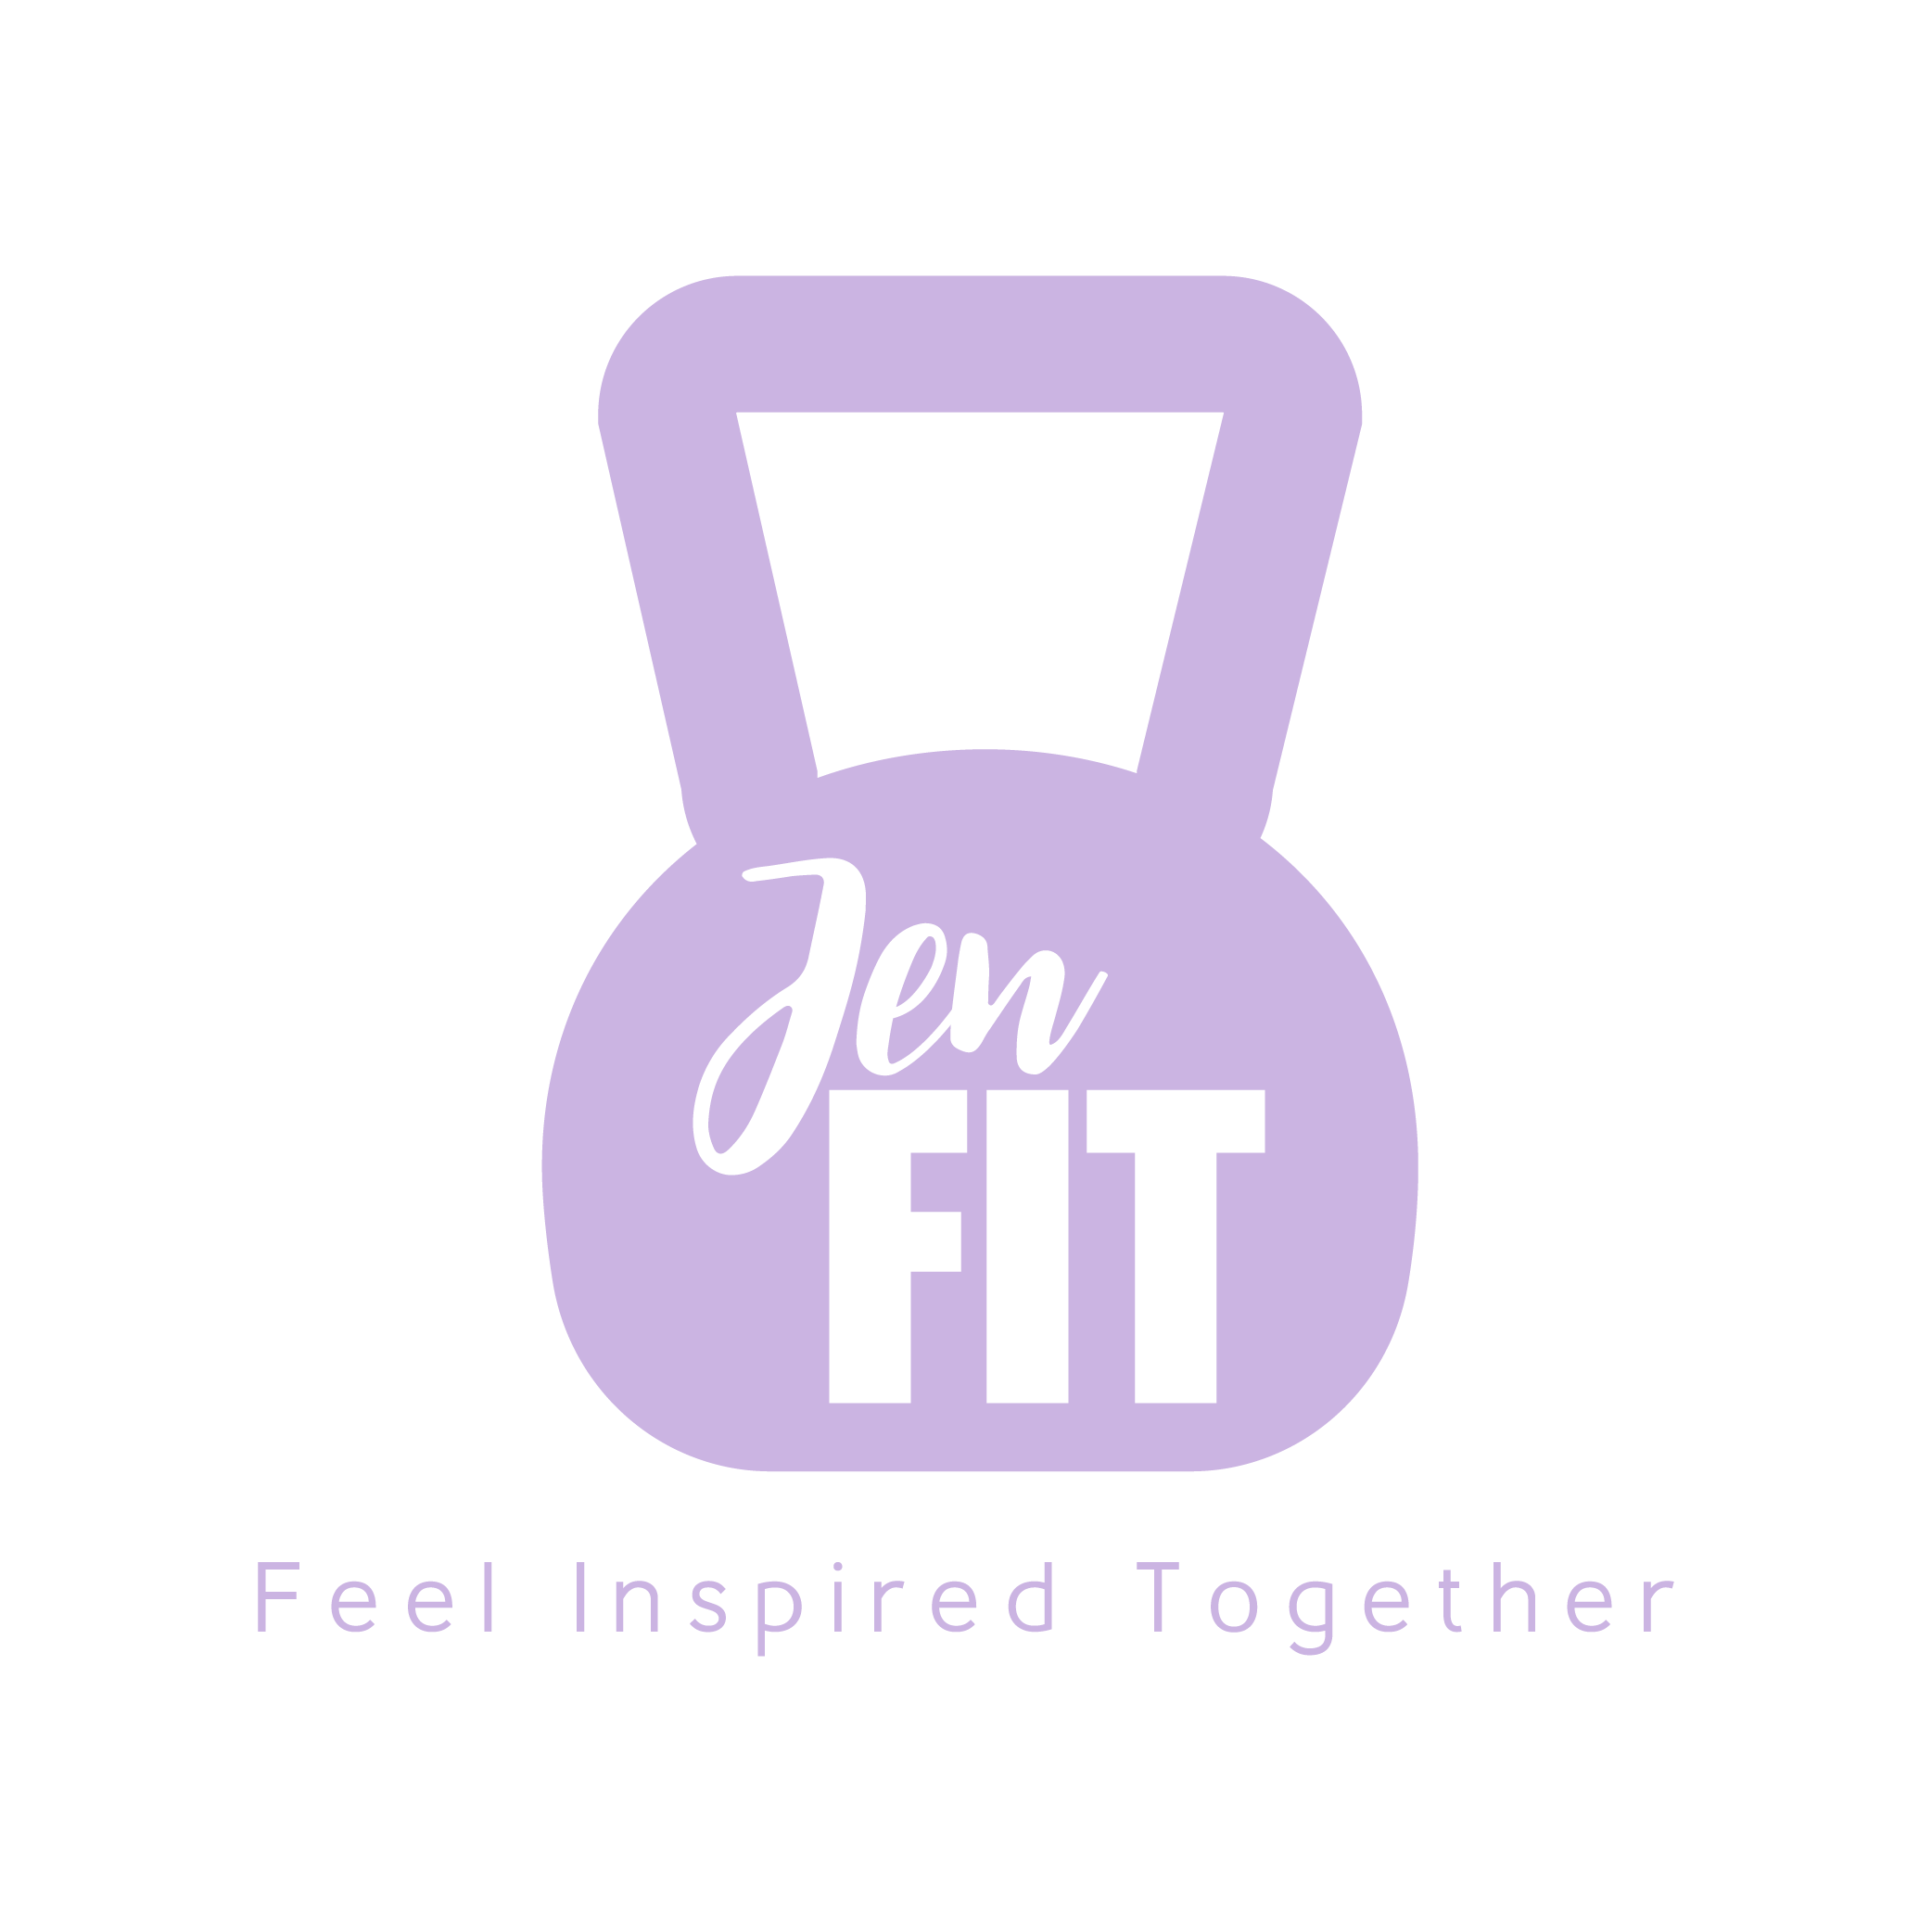 JenFit - Jennifer McLoughlin Fitness, PT and Yoga